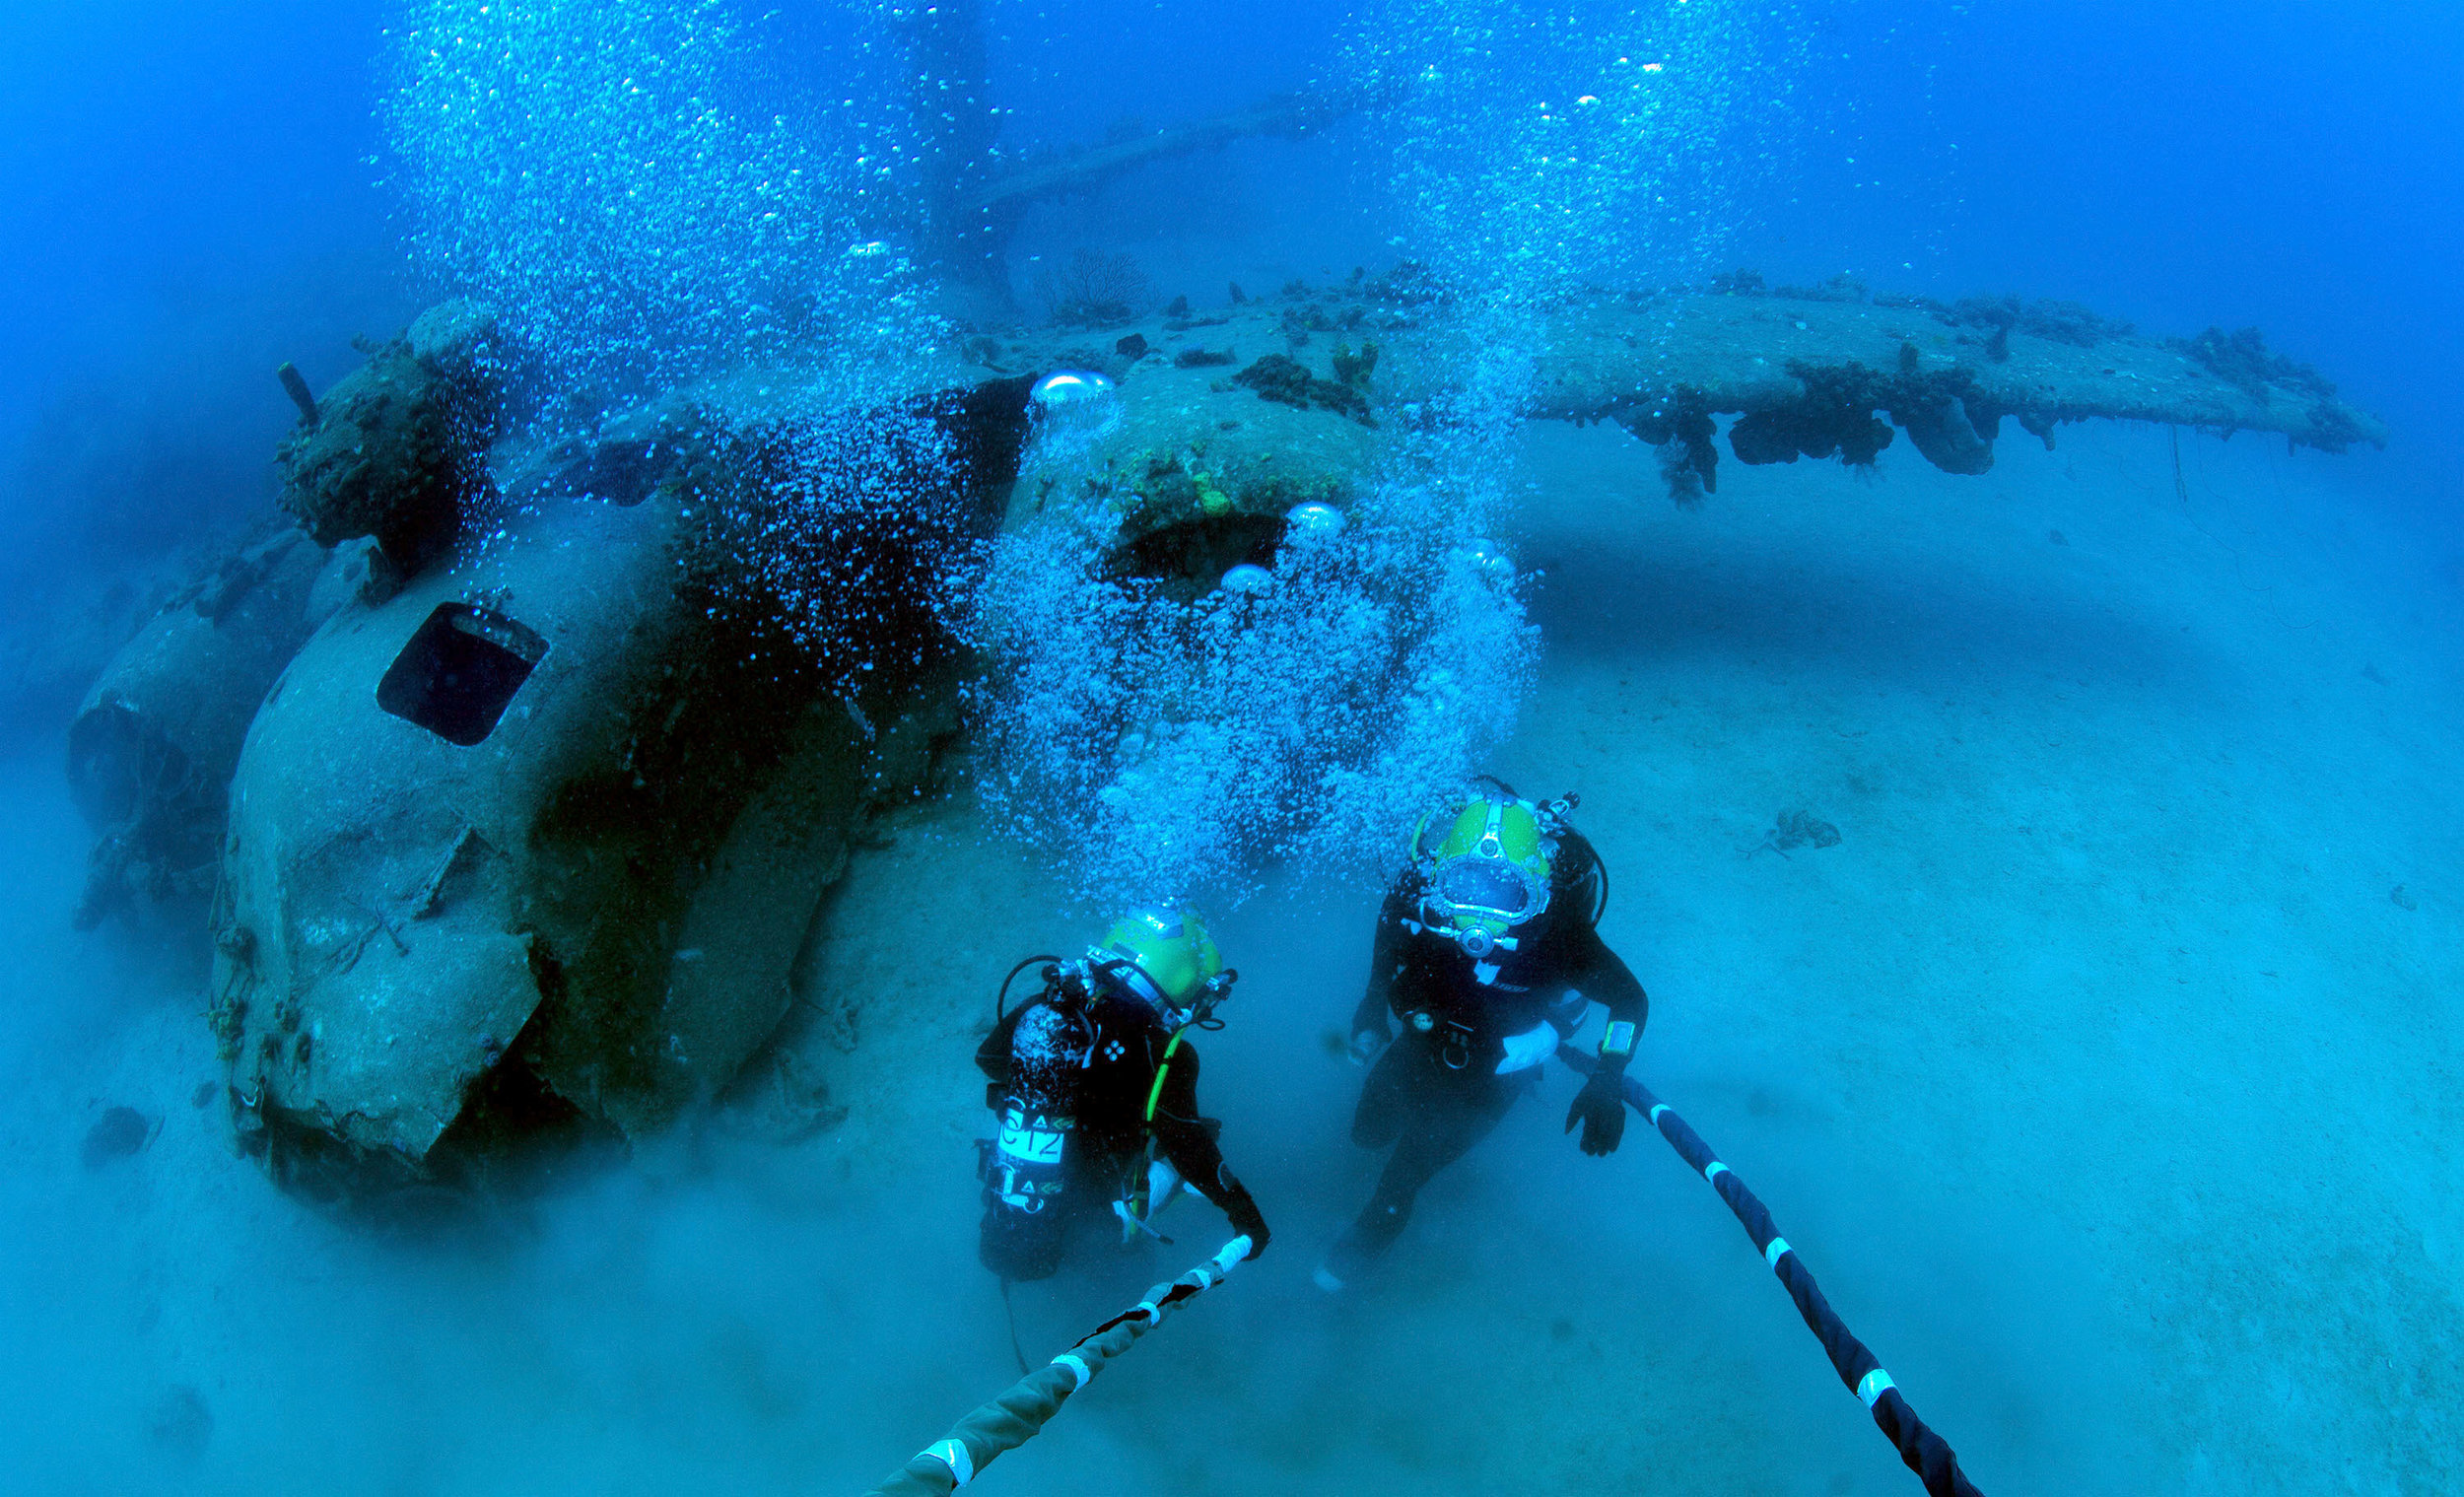 2 navy divers exploring a sunken aircraft